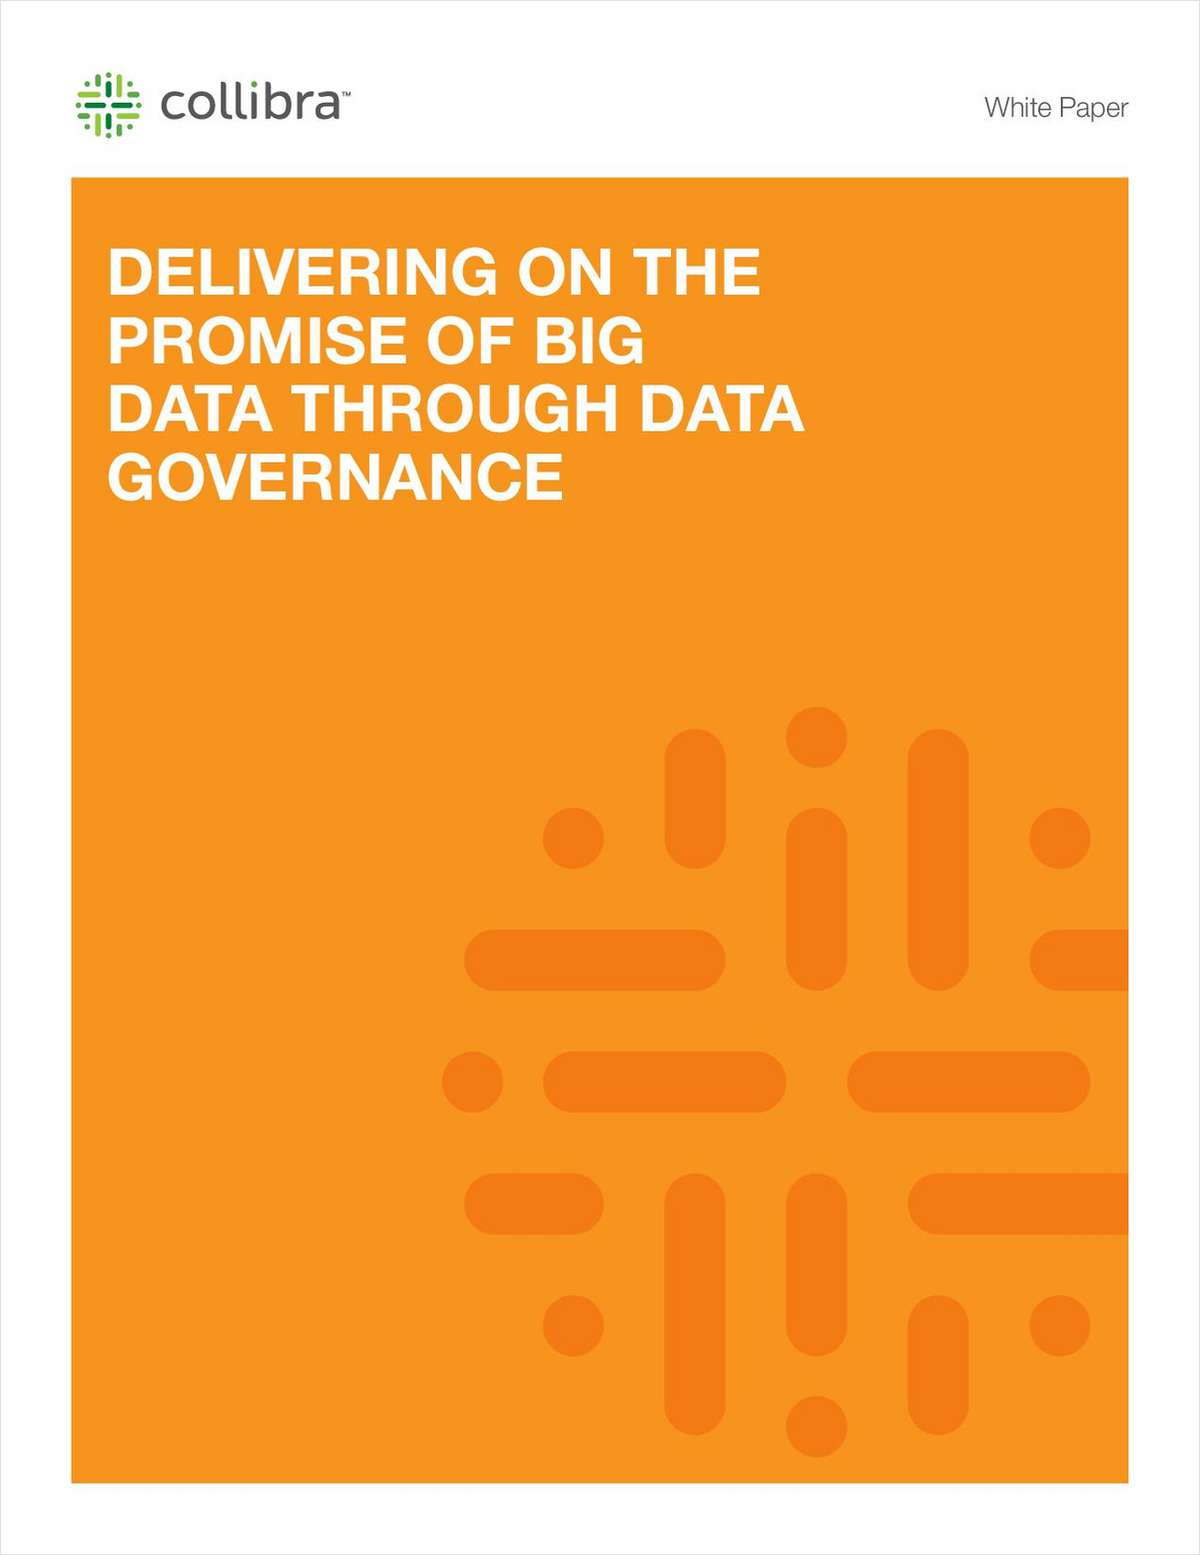 Deliver on the Promise of Big Data with Data Governance